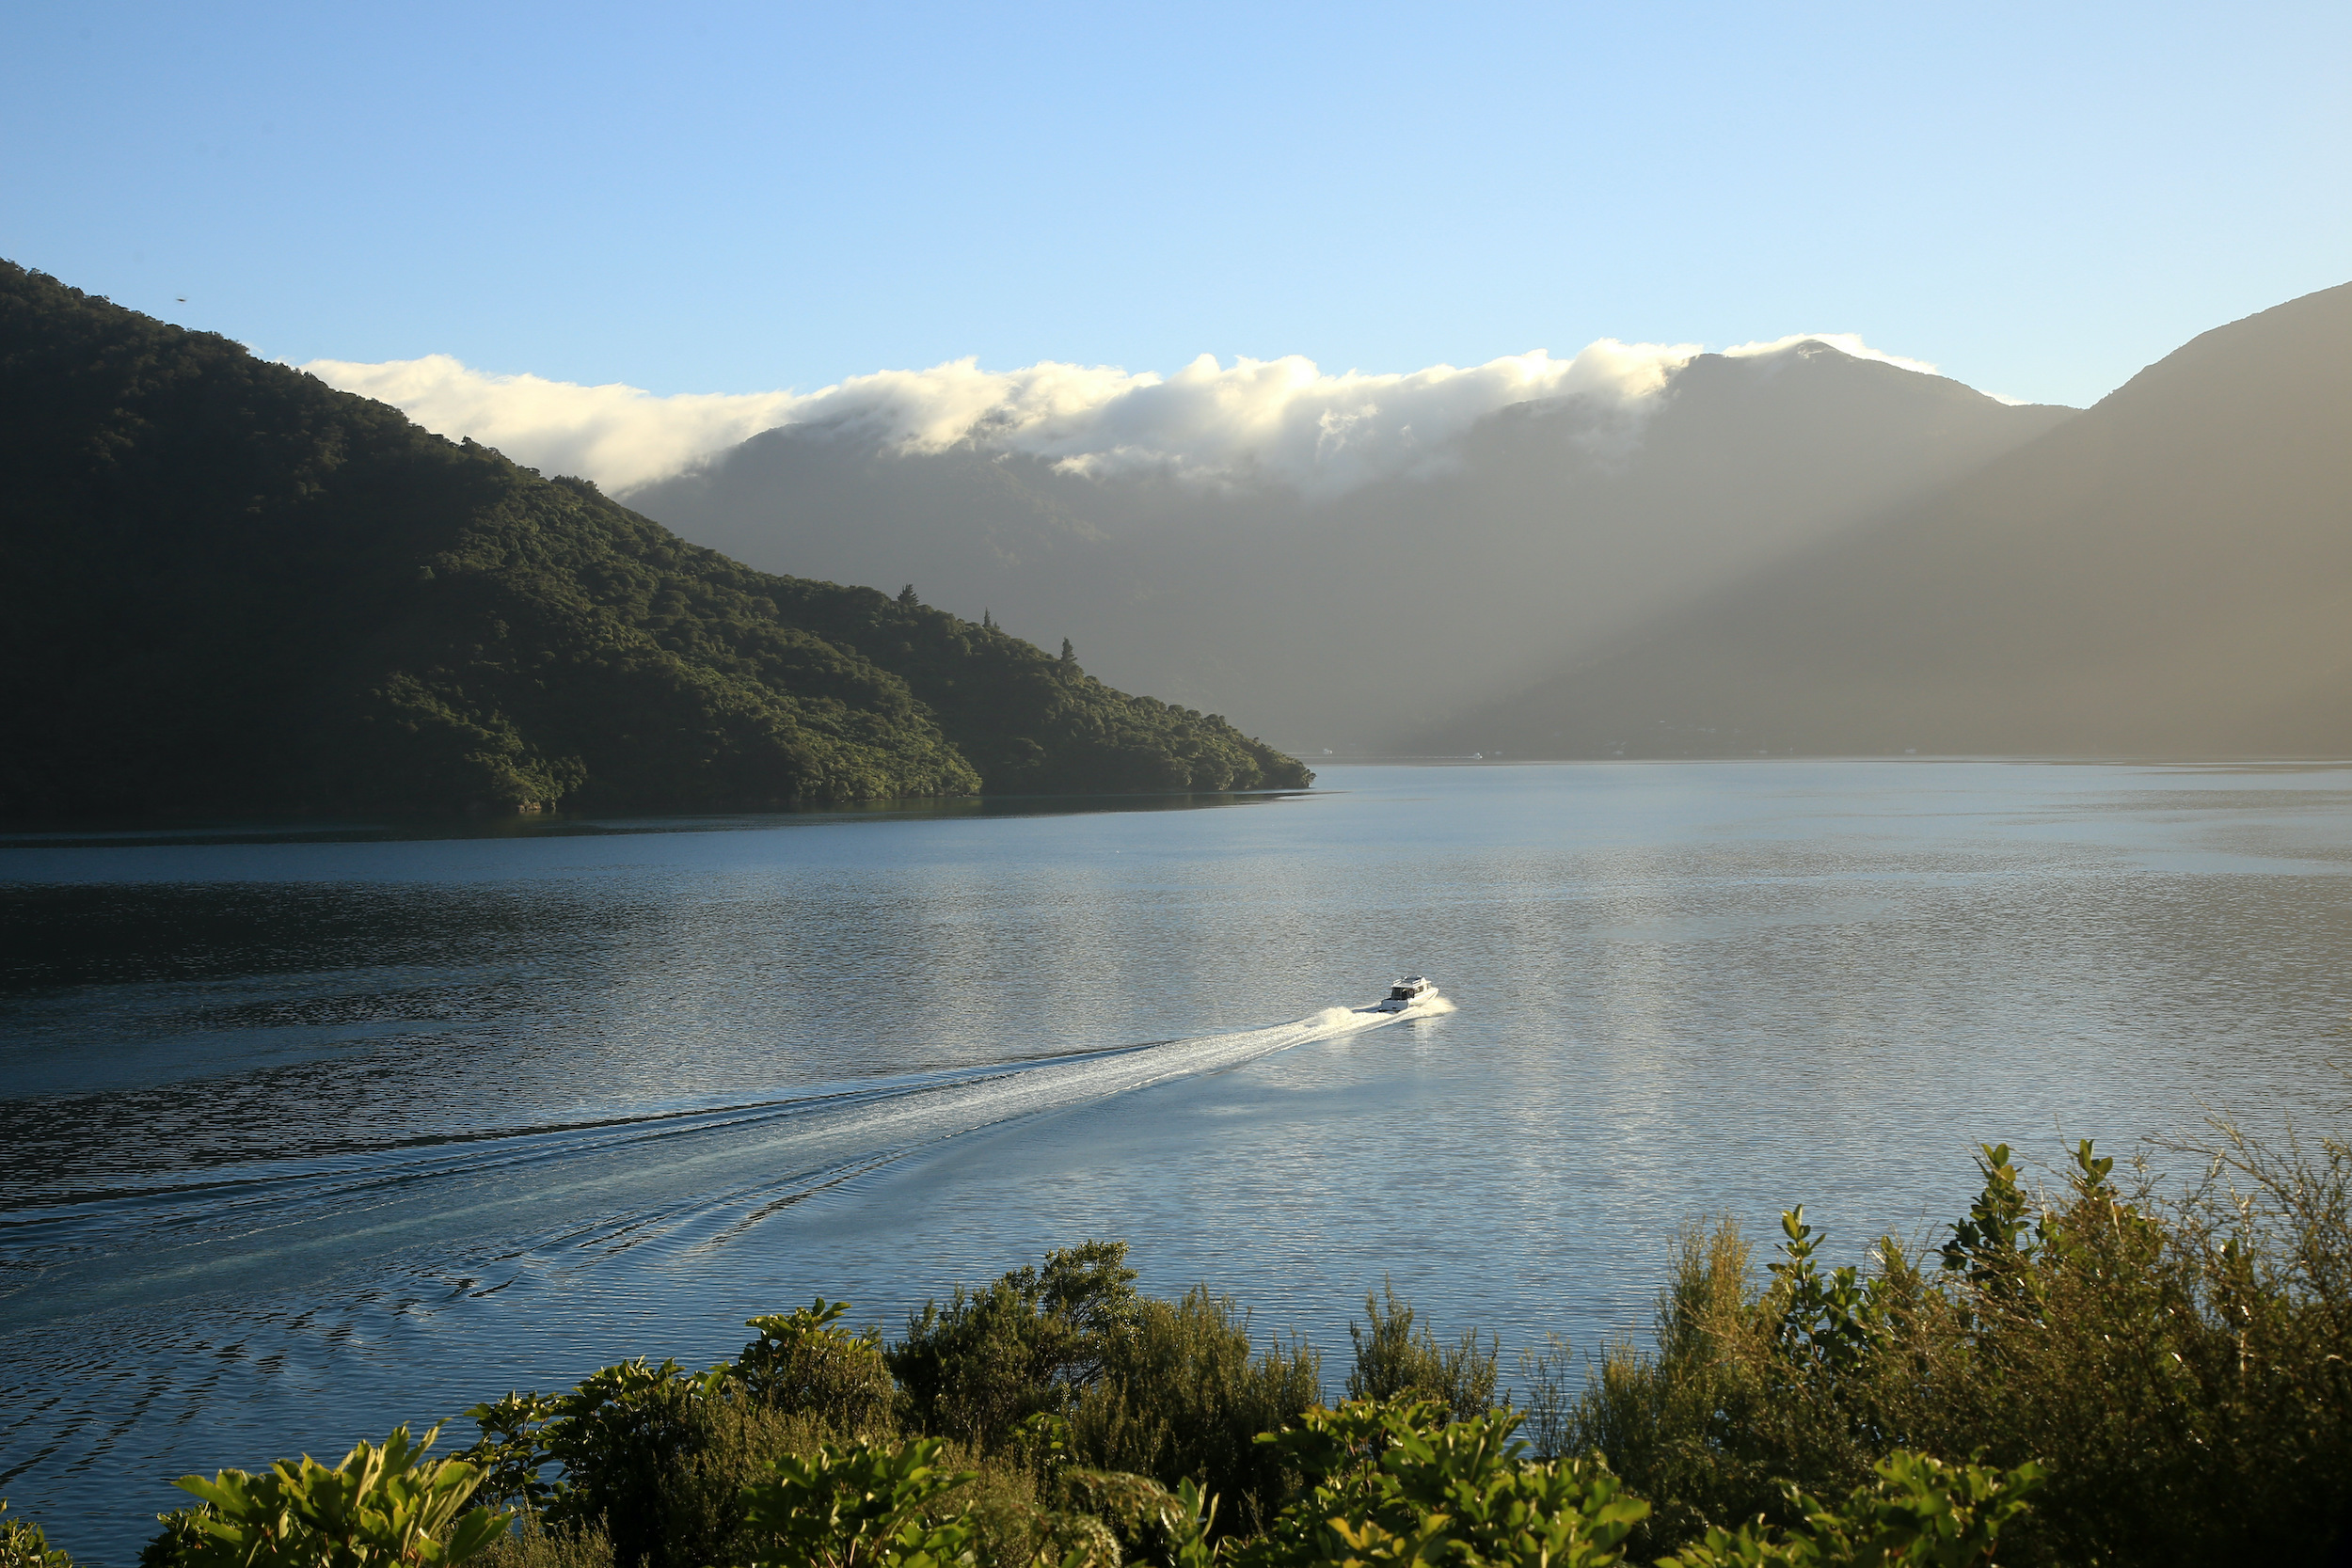 A Cougar Line boat leaves a wake in the calm water as it cruises through the Marlborough Sounds, New Zealand.